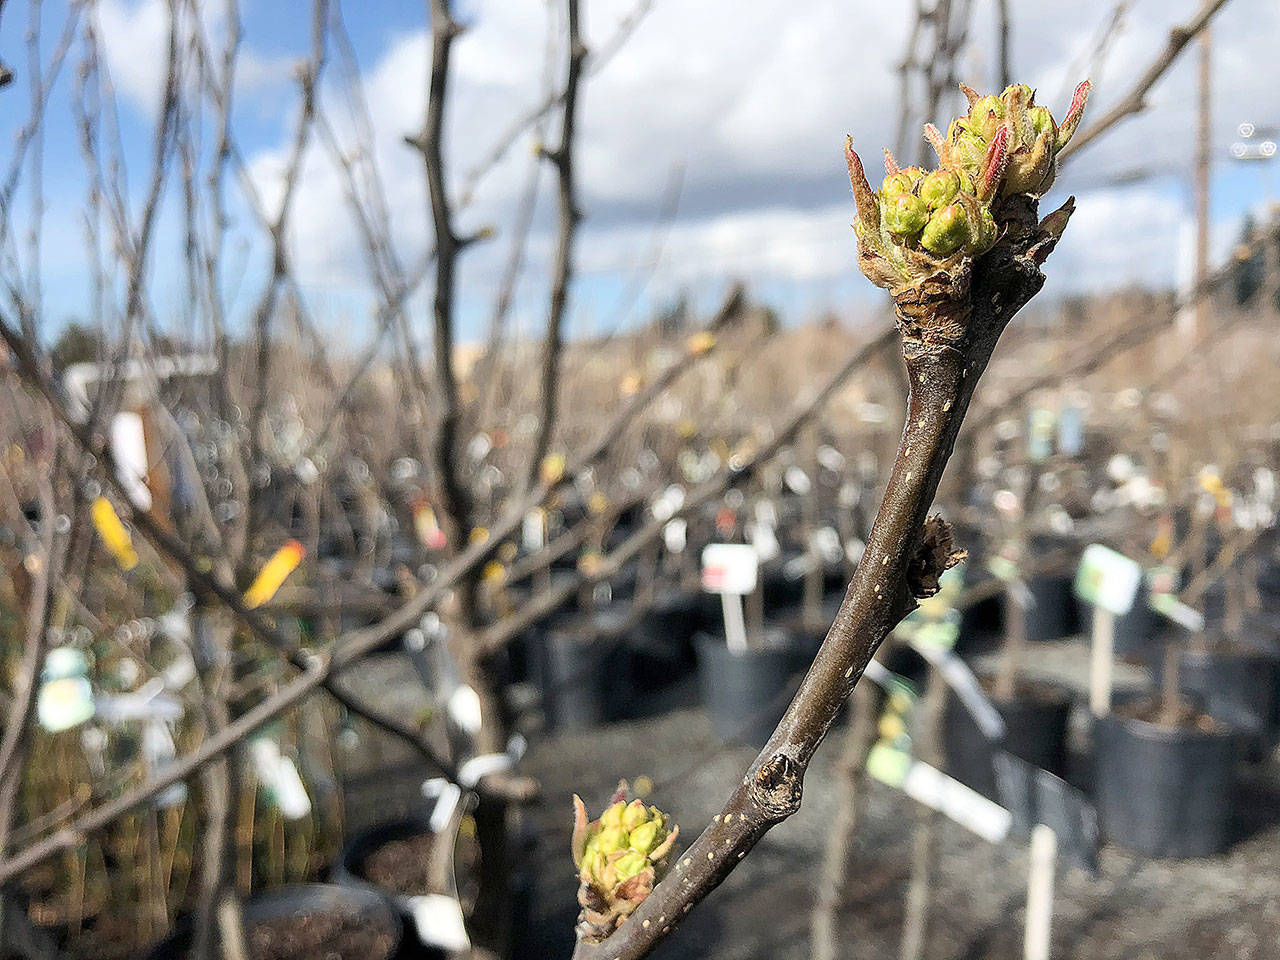 Fruit trees should be pruned now, even if they are starting to push flower buds. (Nicole Phillips)